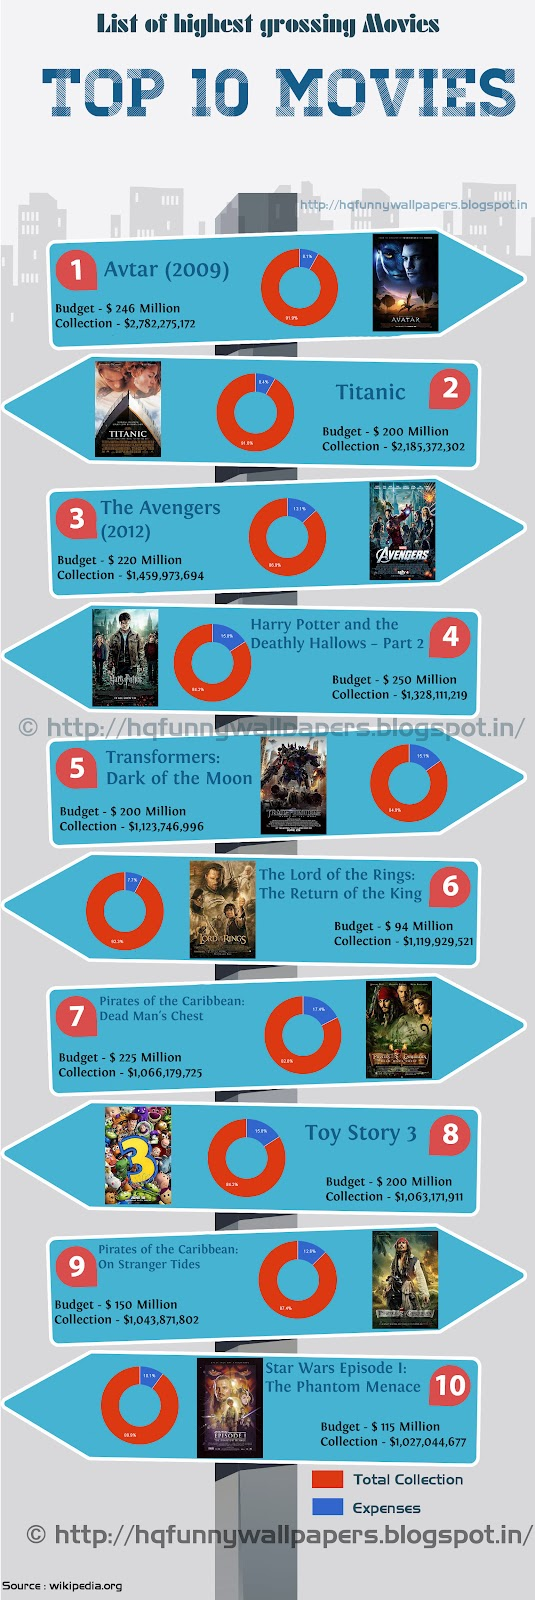 List of TOP 10 Highest grossing movies world wide